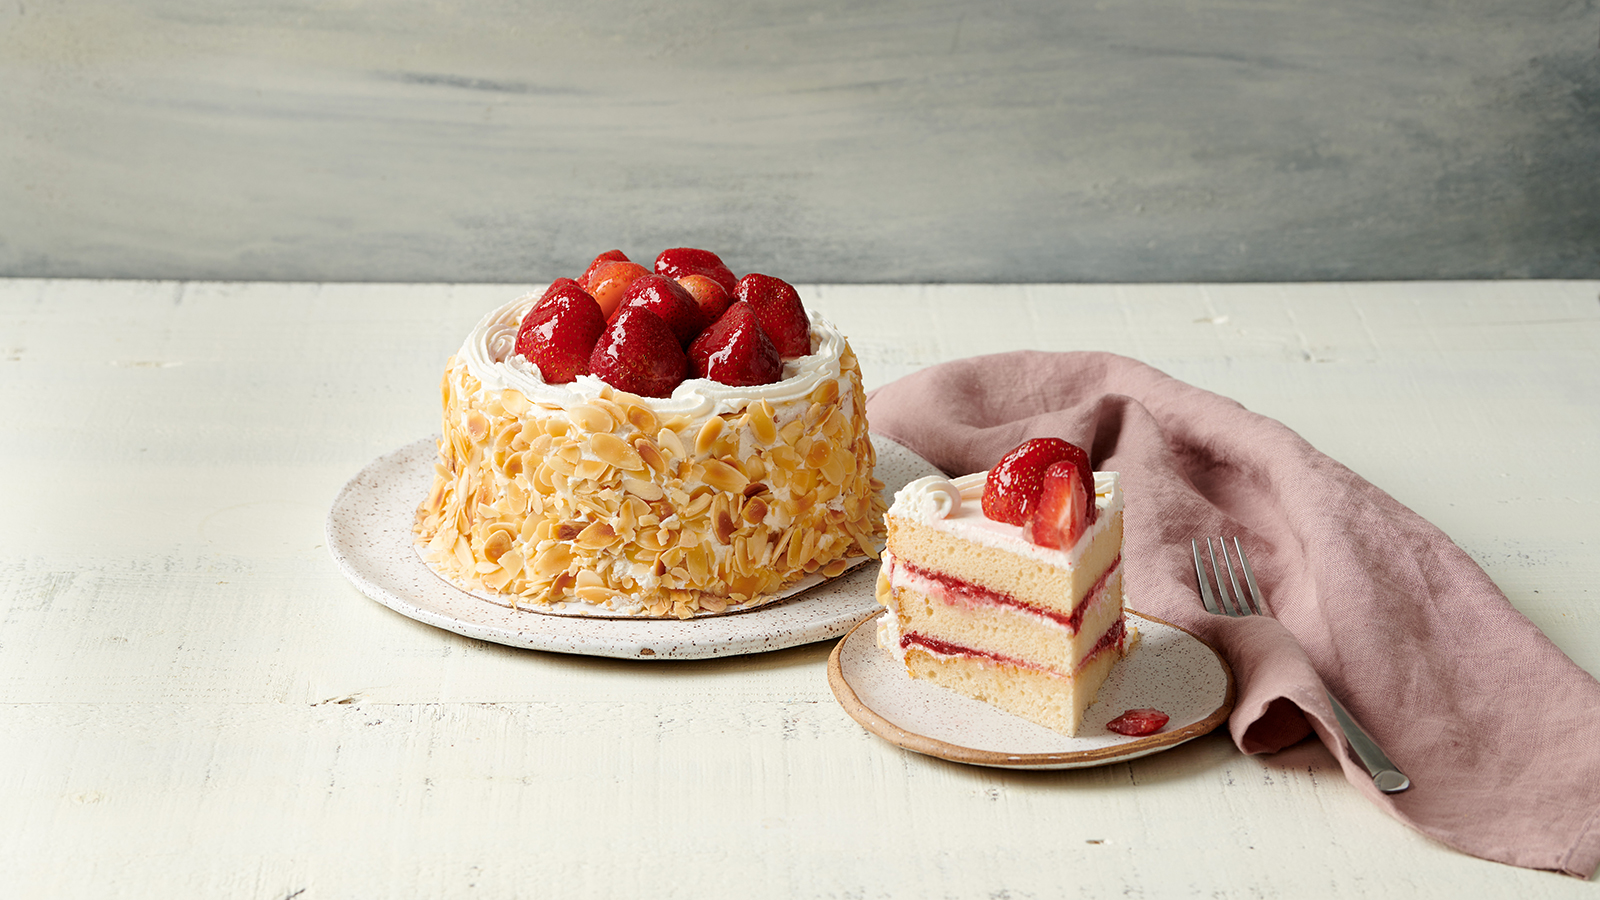 Strawberry Chantilly Cake